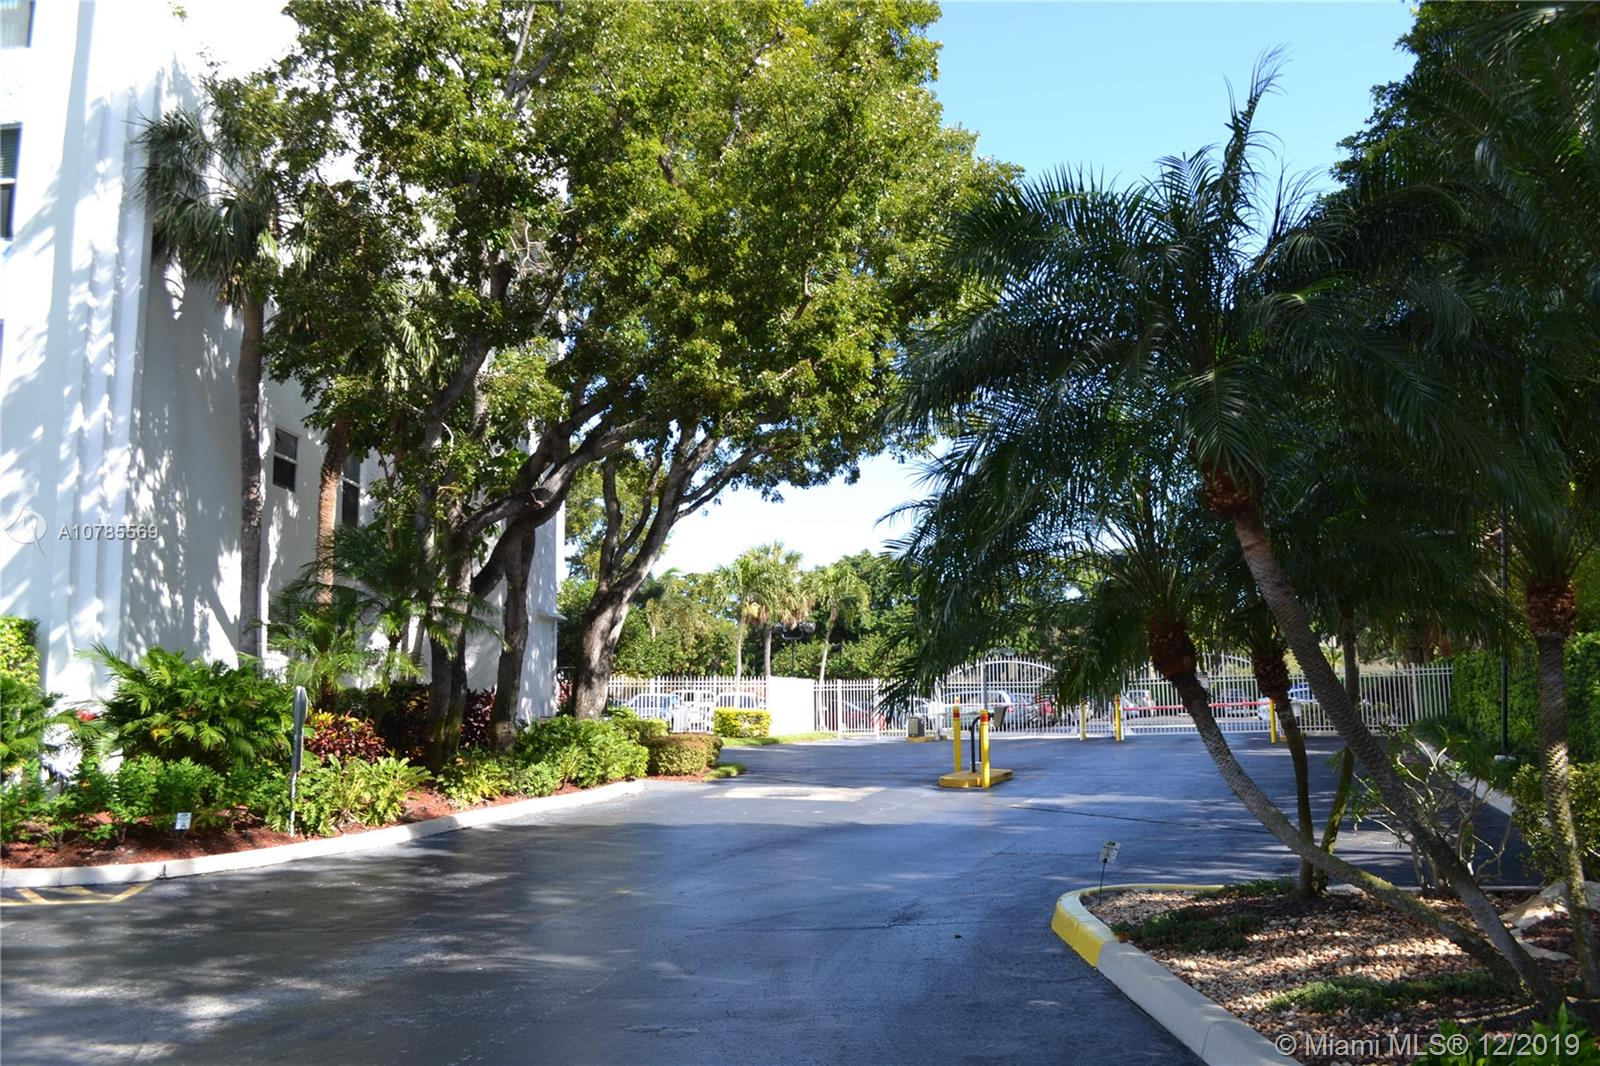 1800 N Andrews Ave # 12E, Fort Lauderdale, Florida 33311, 1 Bedroom Bedrooms, ,2 BathroomsBathrooms,Residential Lease,For Rent,1800 N Andrews Ave # 12E,A10785569